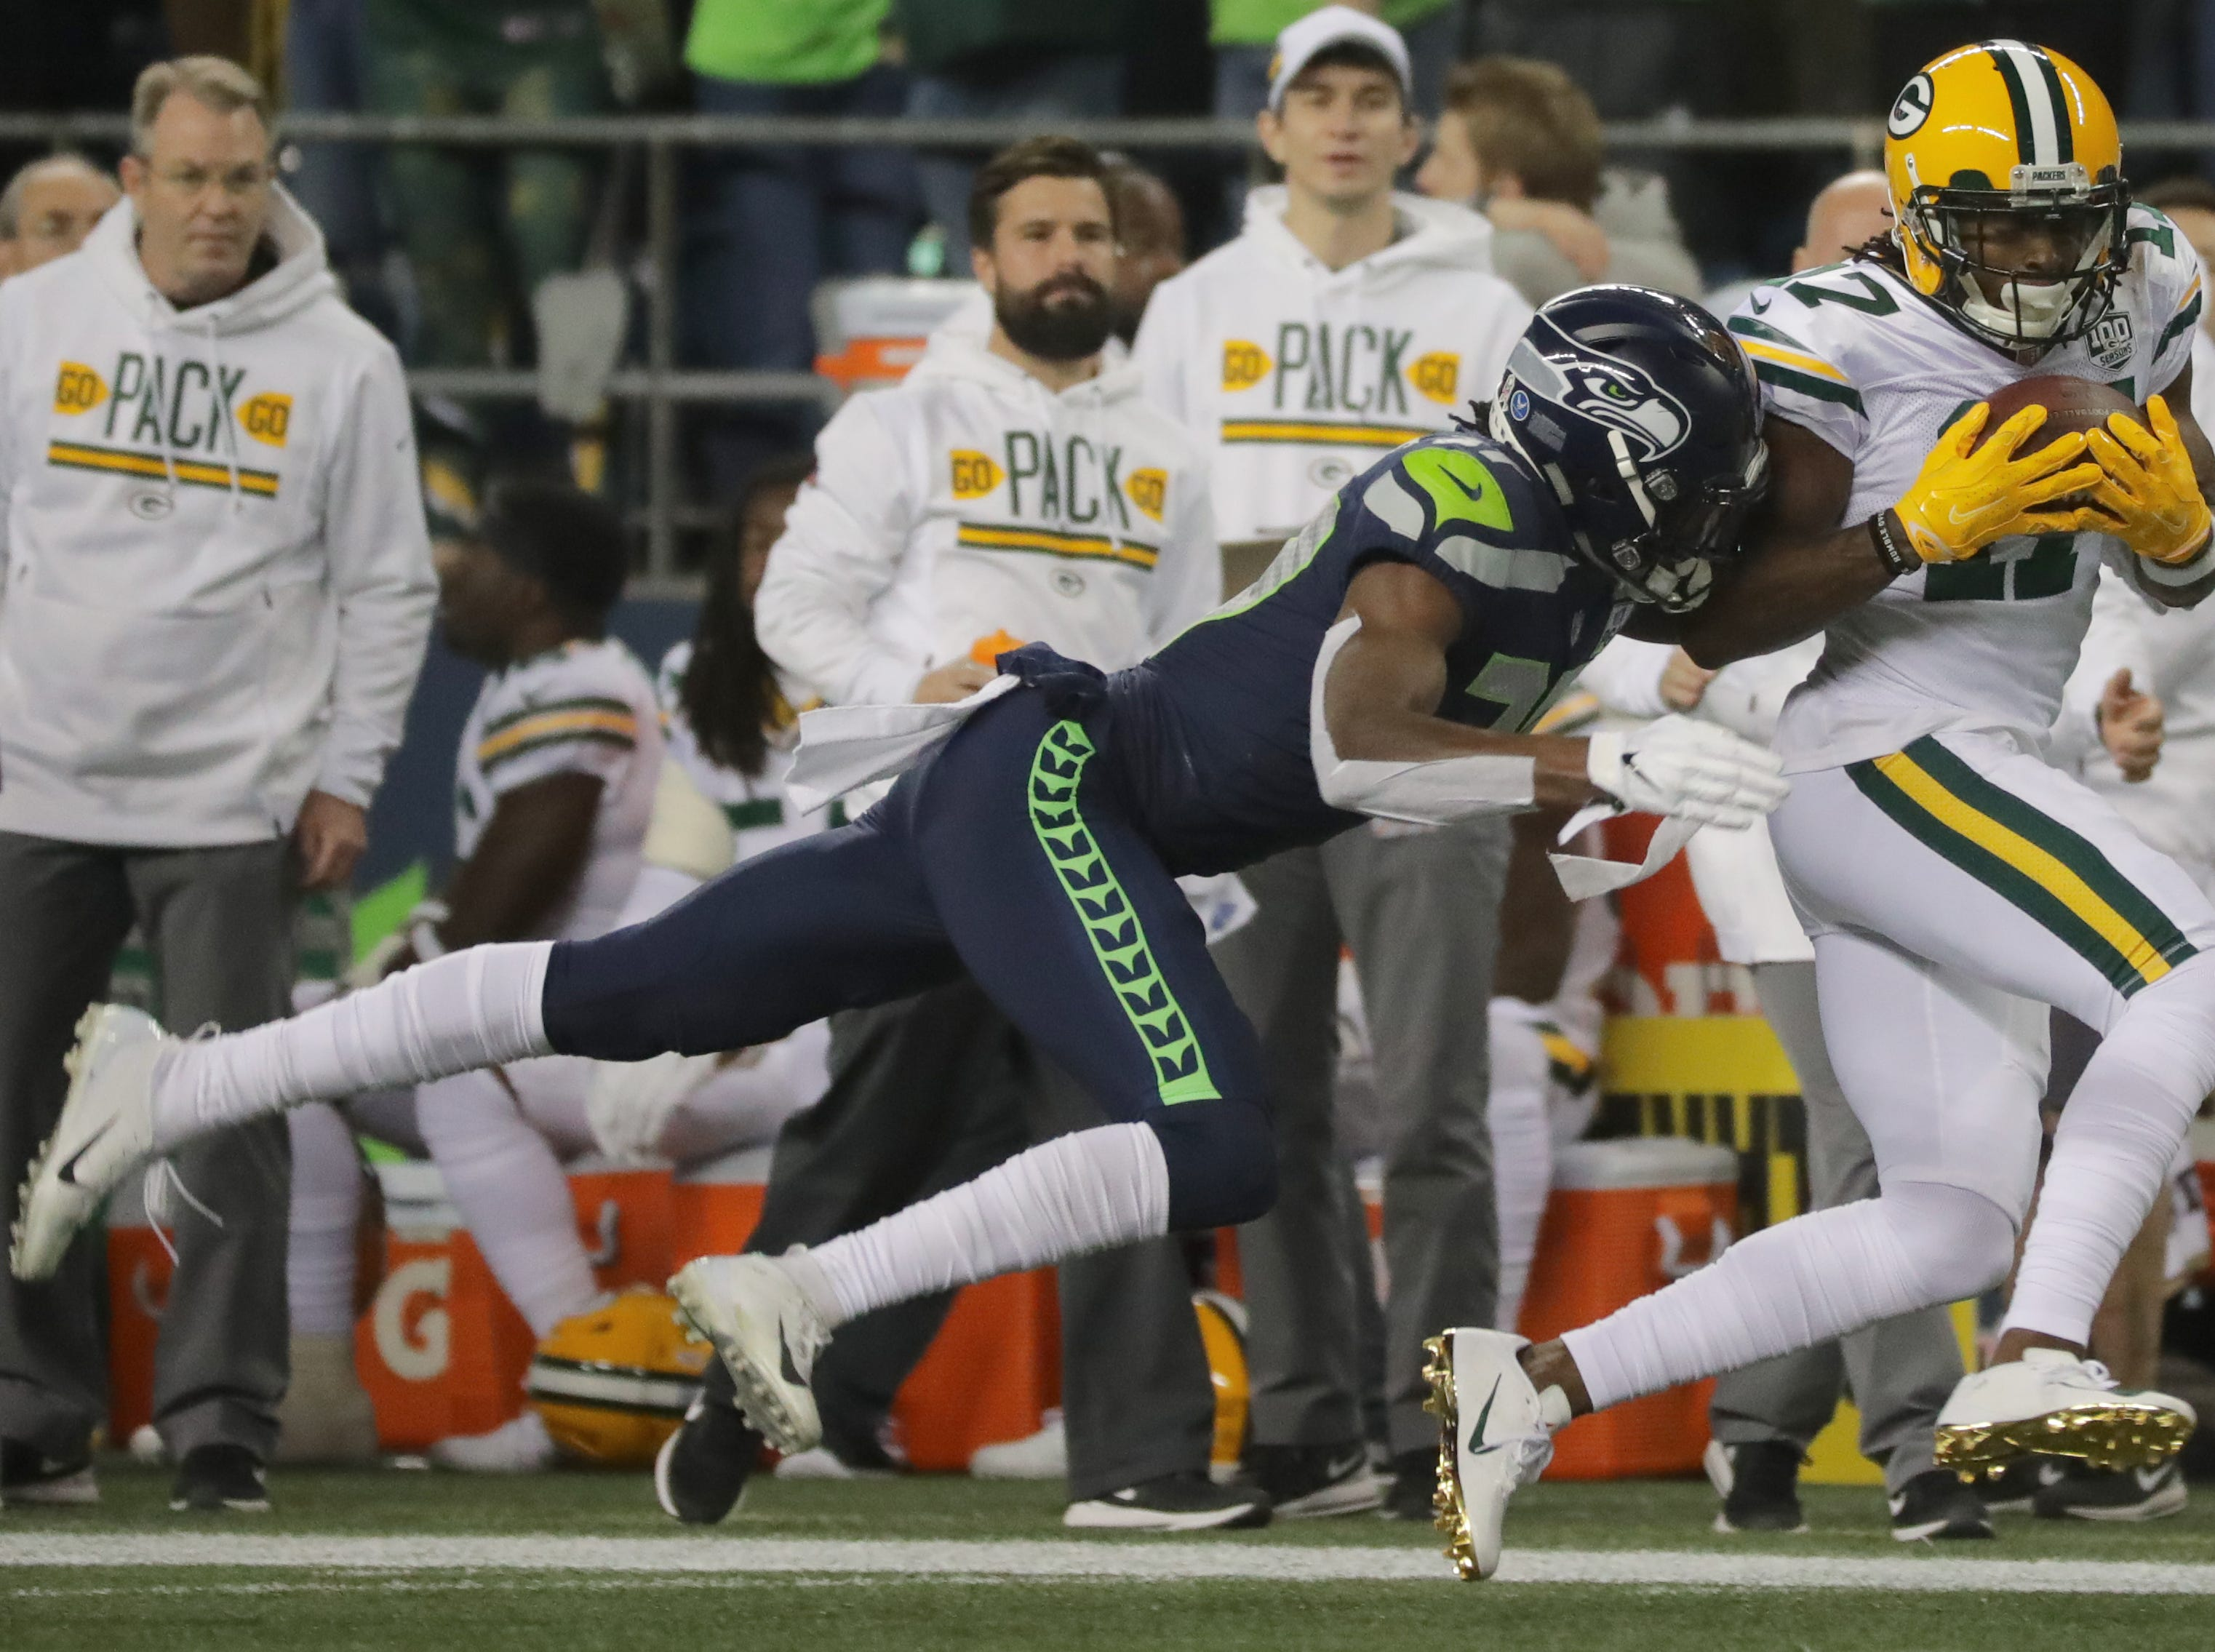 Green Bay Packers wide receiver Davante Adams (17) picks up 41-yards in a reception while being covered by Seattle Seahawks cornerback Tre Flowers (37) during the first quarter of their game Thursday, November 25, 2018 at CenturyLink Field in Seattle, Wash.